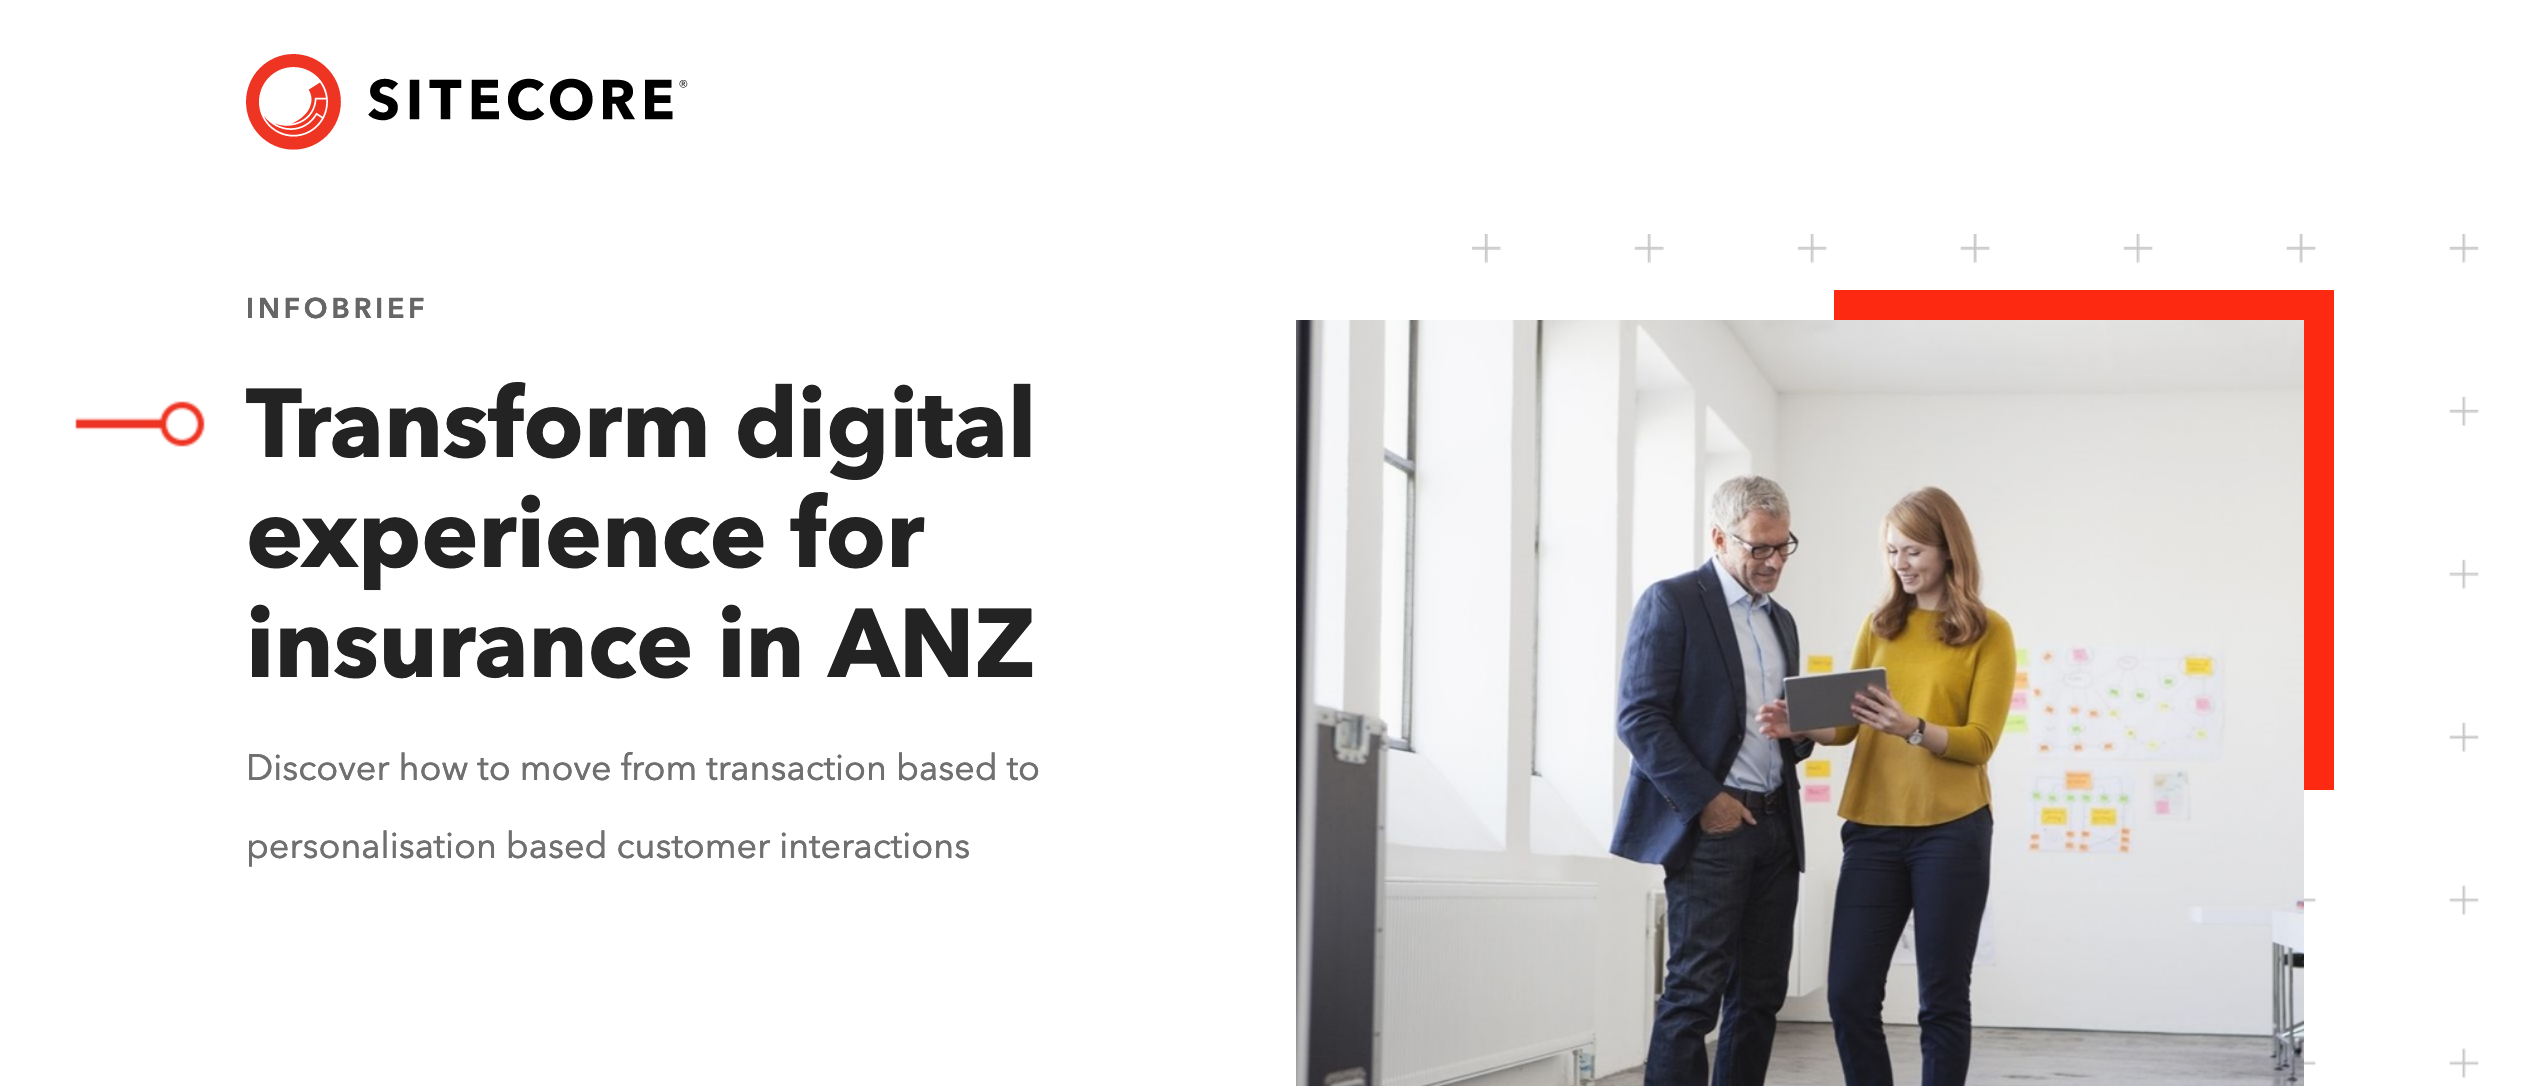 Transform digital experience for insurance in ANZ - Transform digital experience for insurance in ANZ